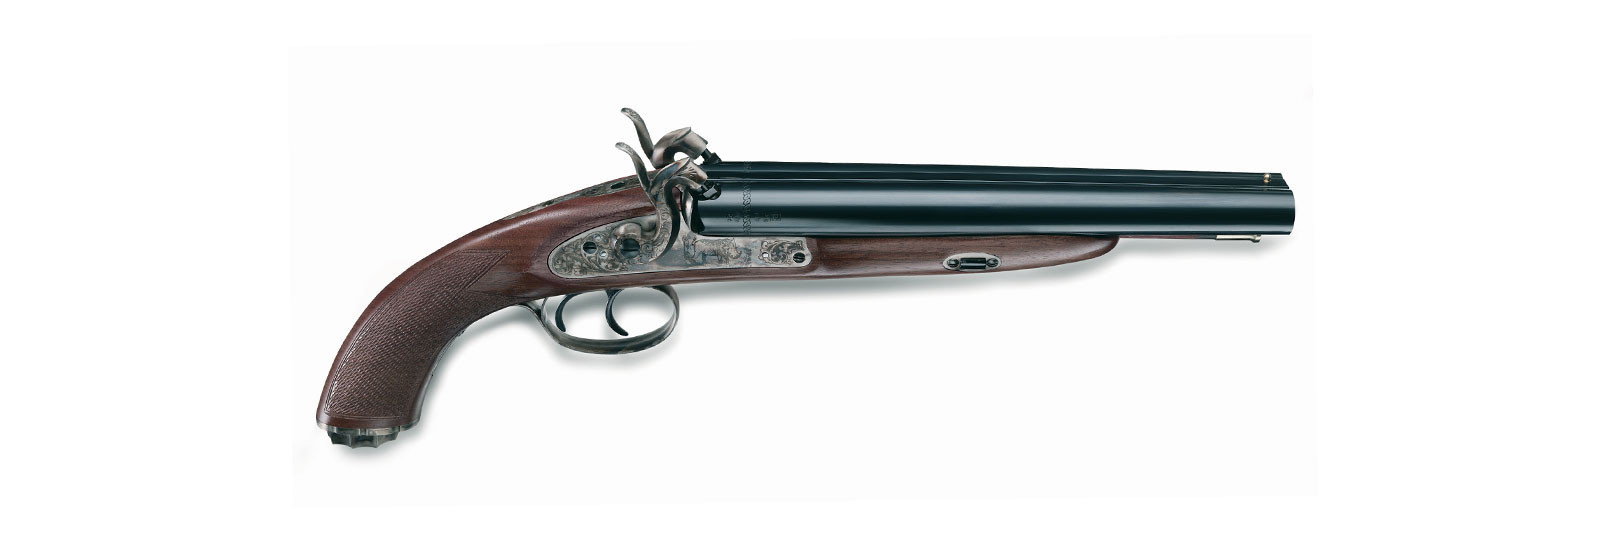 Howdah hunter pistol .20